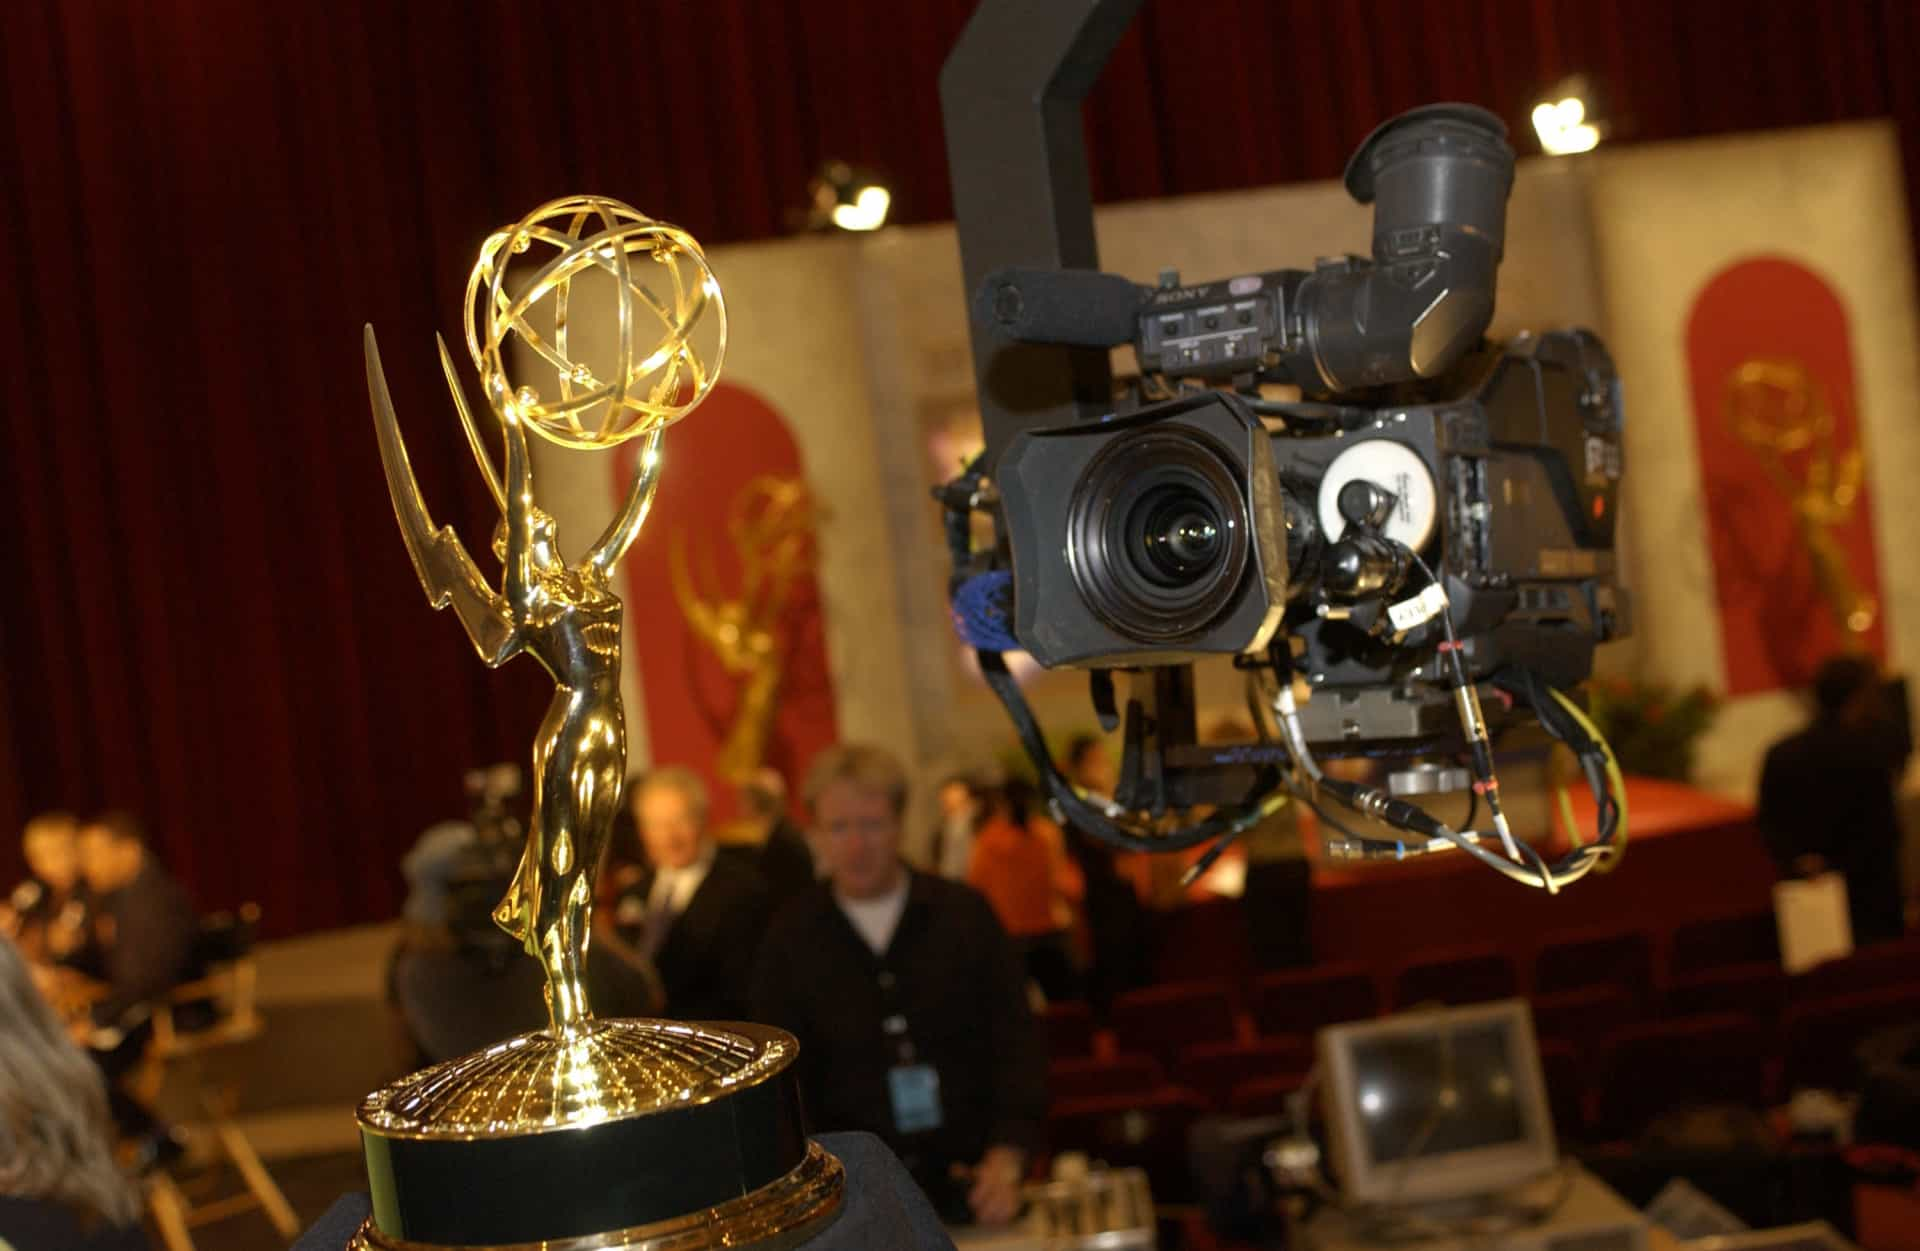 Surprising facts you didn't know about the Emmy Awards